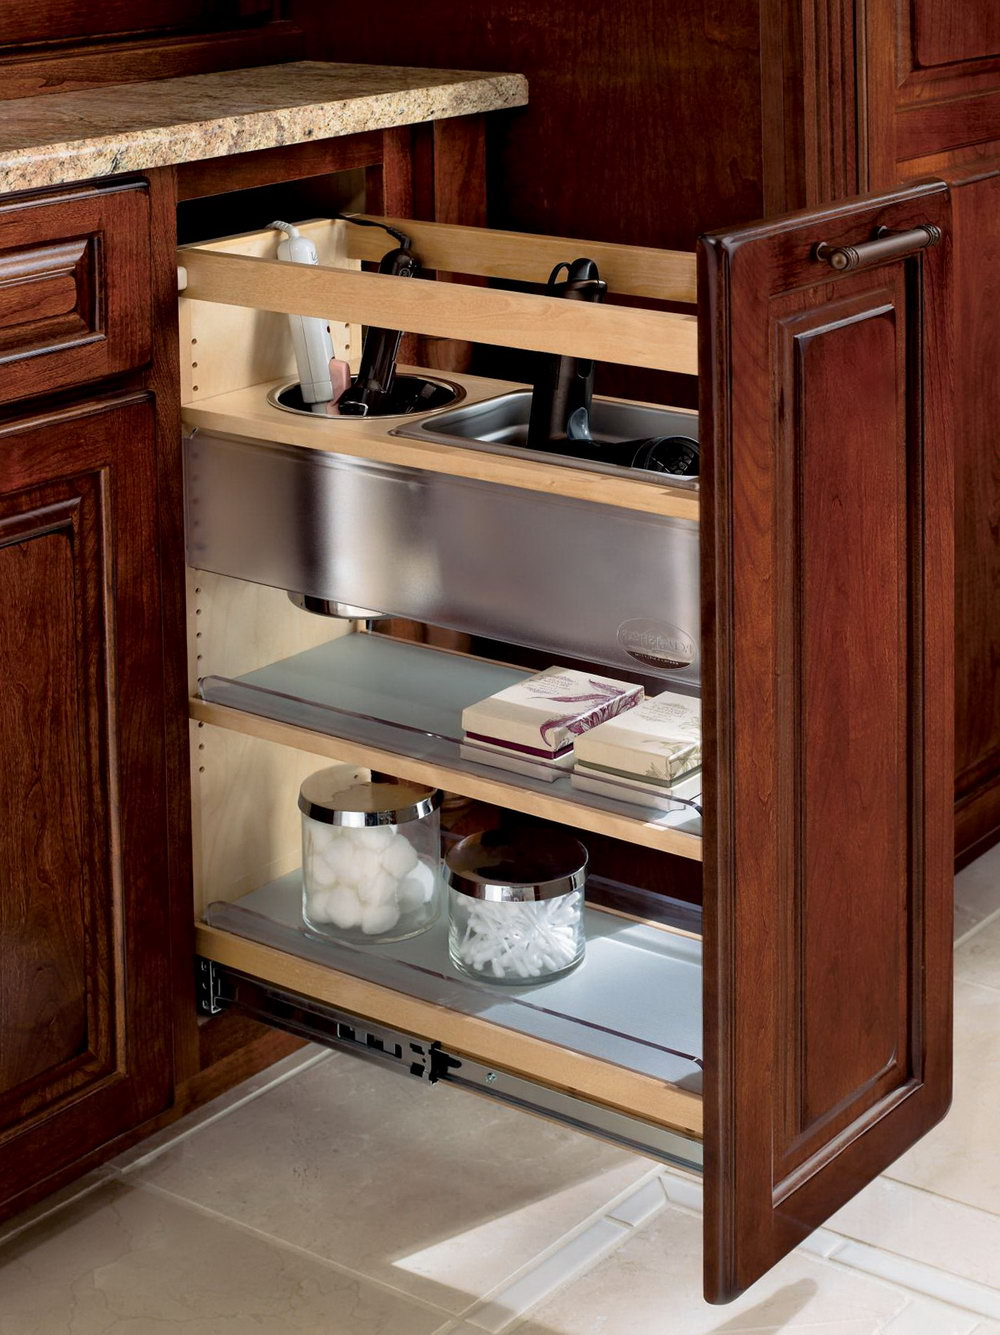 Cabinet Pull Out Organizers